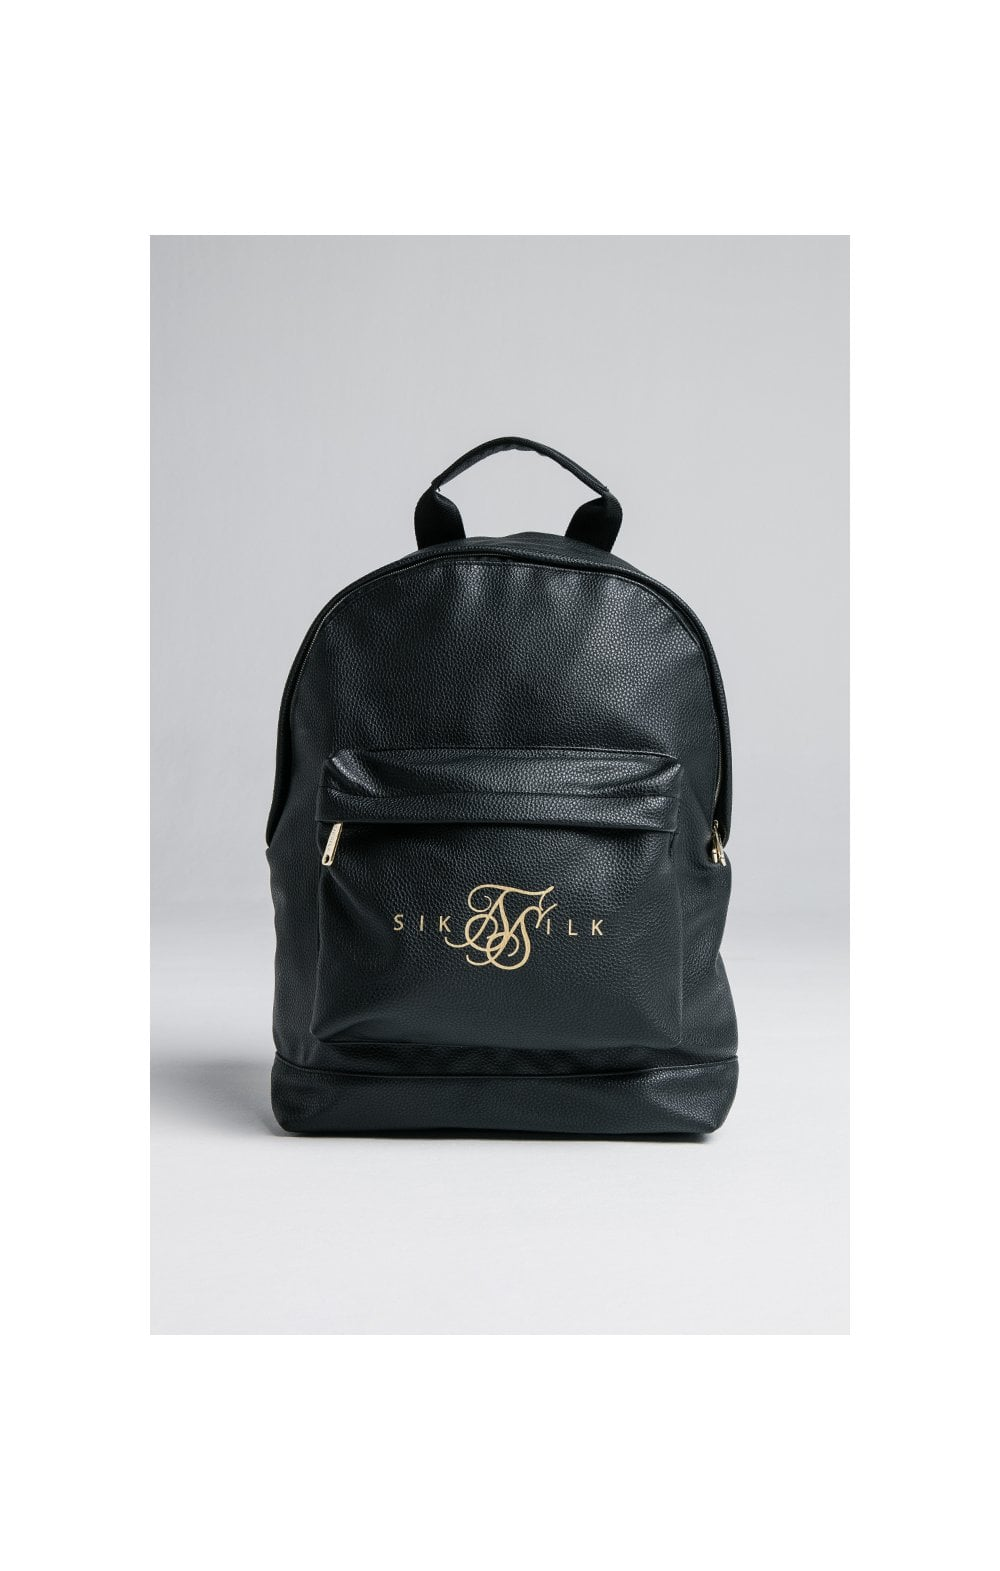 SikSilk Backpack - Black